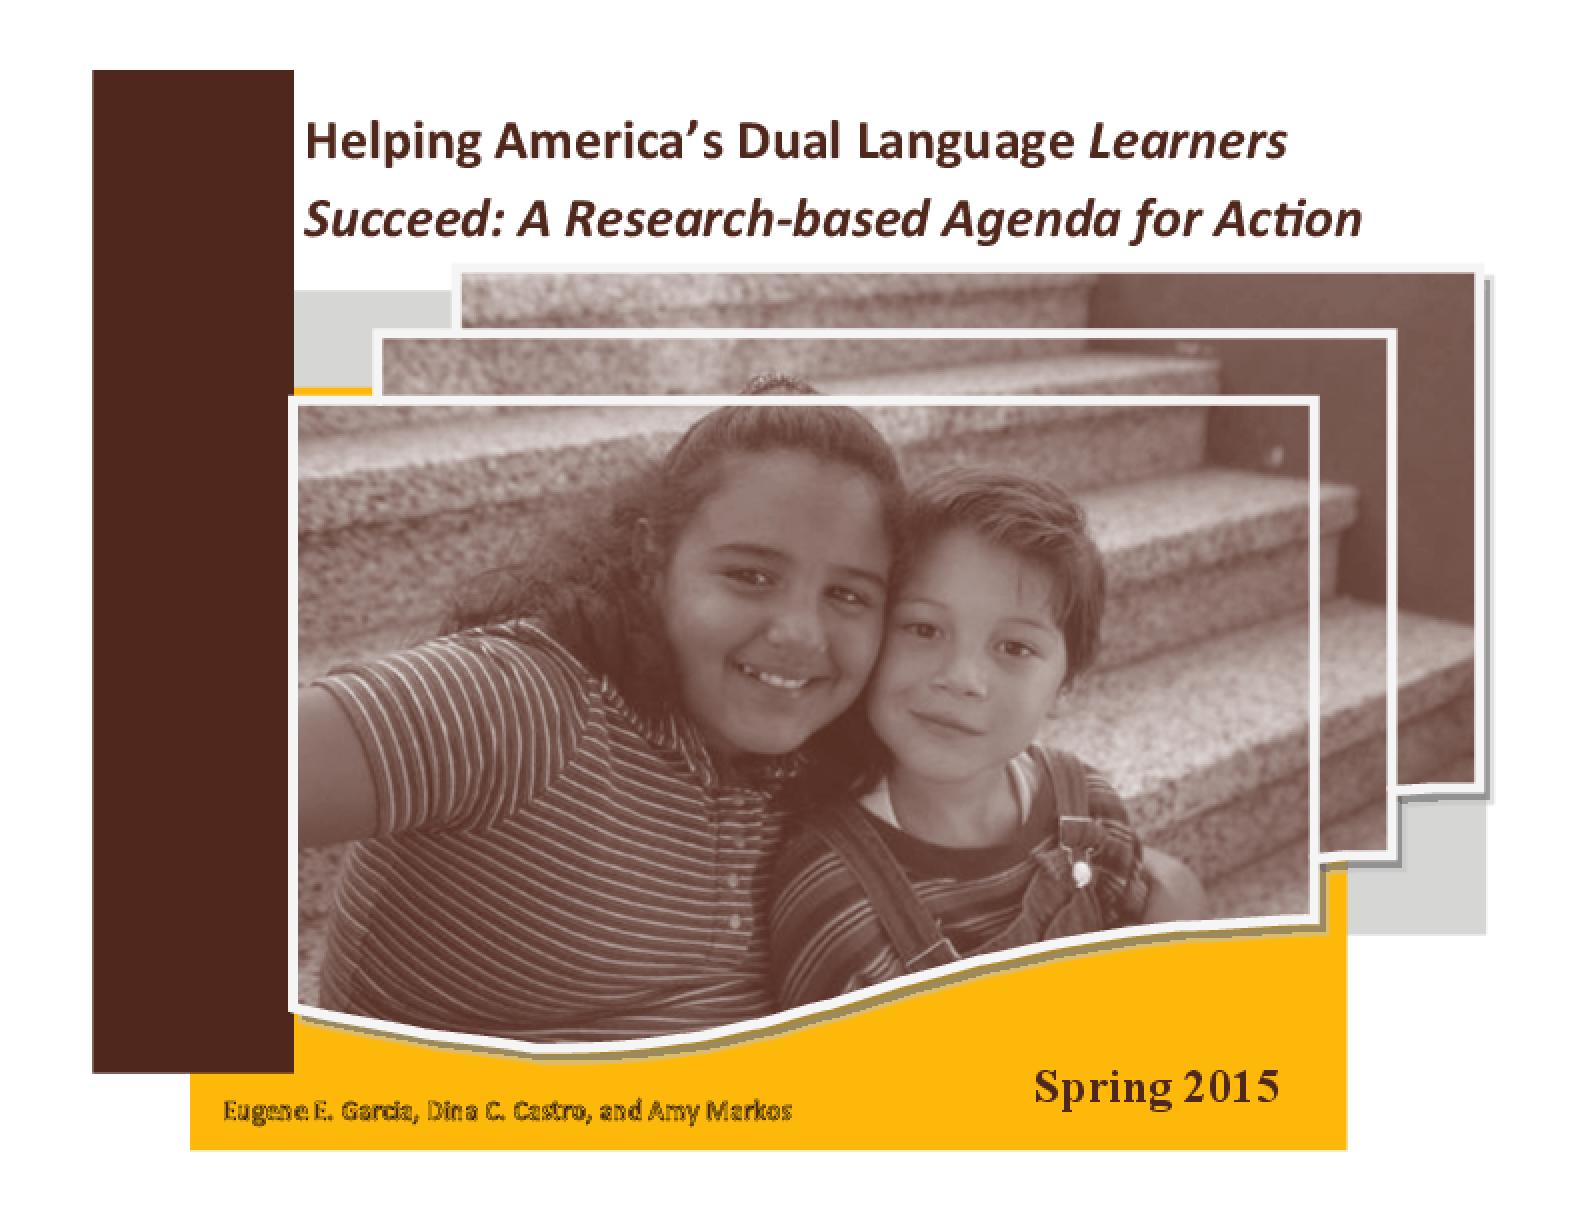 Helping America's Dual Language Learners Succeed: A Research-based Agenda for Action